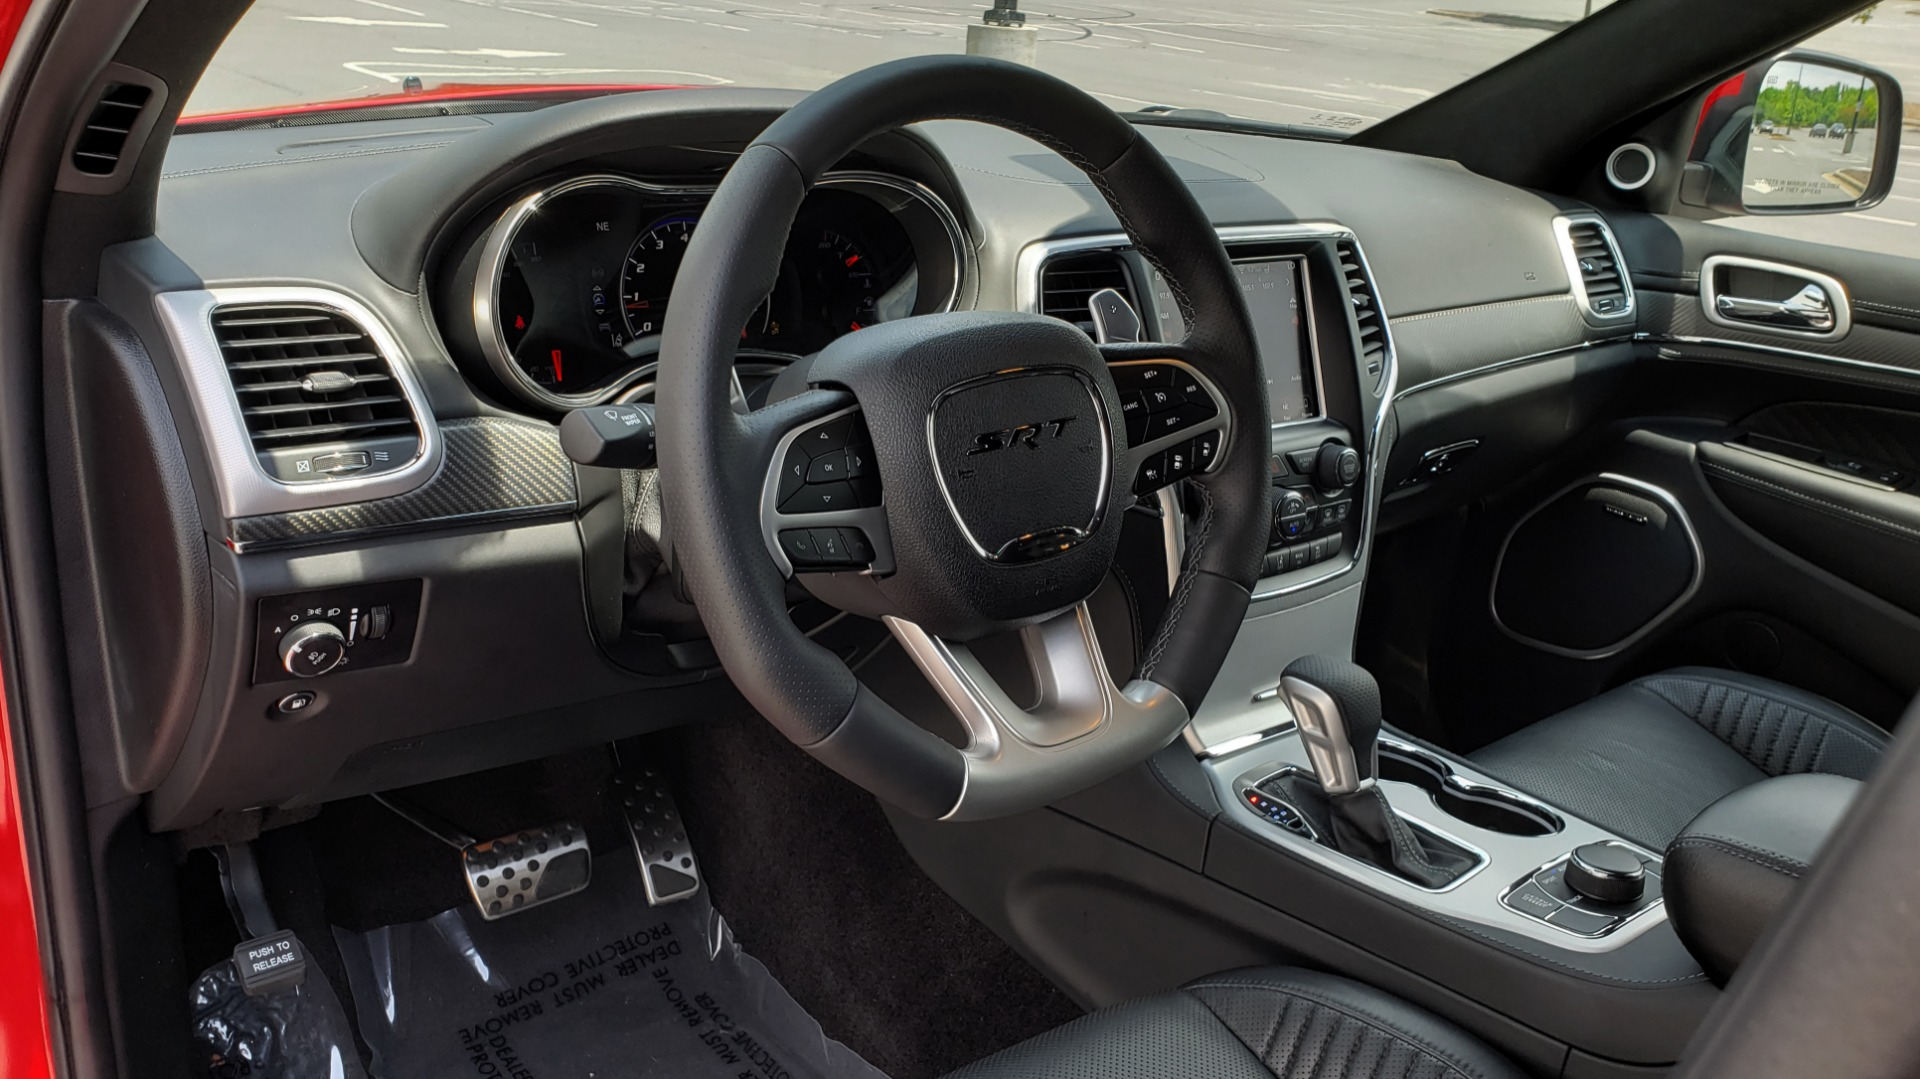 Used 2018 Jeep GRAND CHEROKEE SRT 4X4 / 6.4L HEMI (475HP) / NAV / SUNROOF / H/K SND / REARVIEW for sale Sold at Formula Imports in Charlotte NC 28227 46